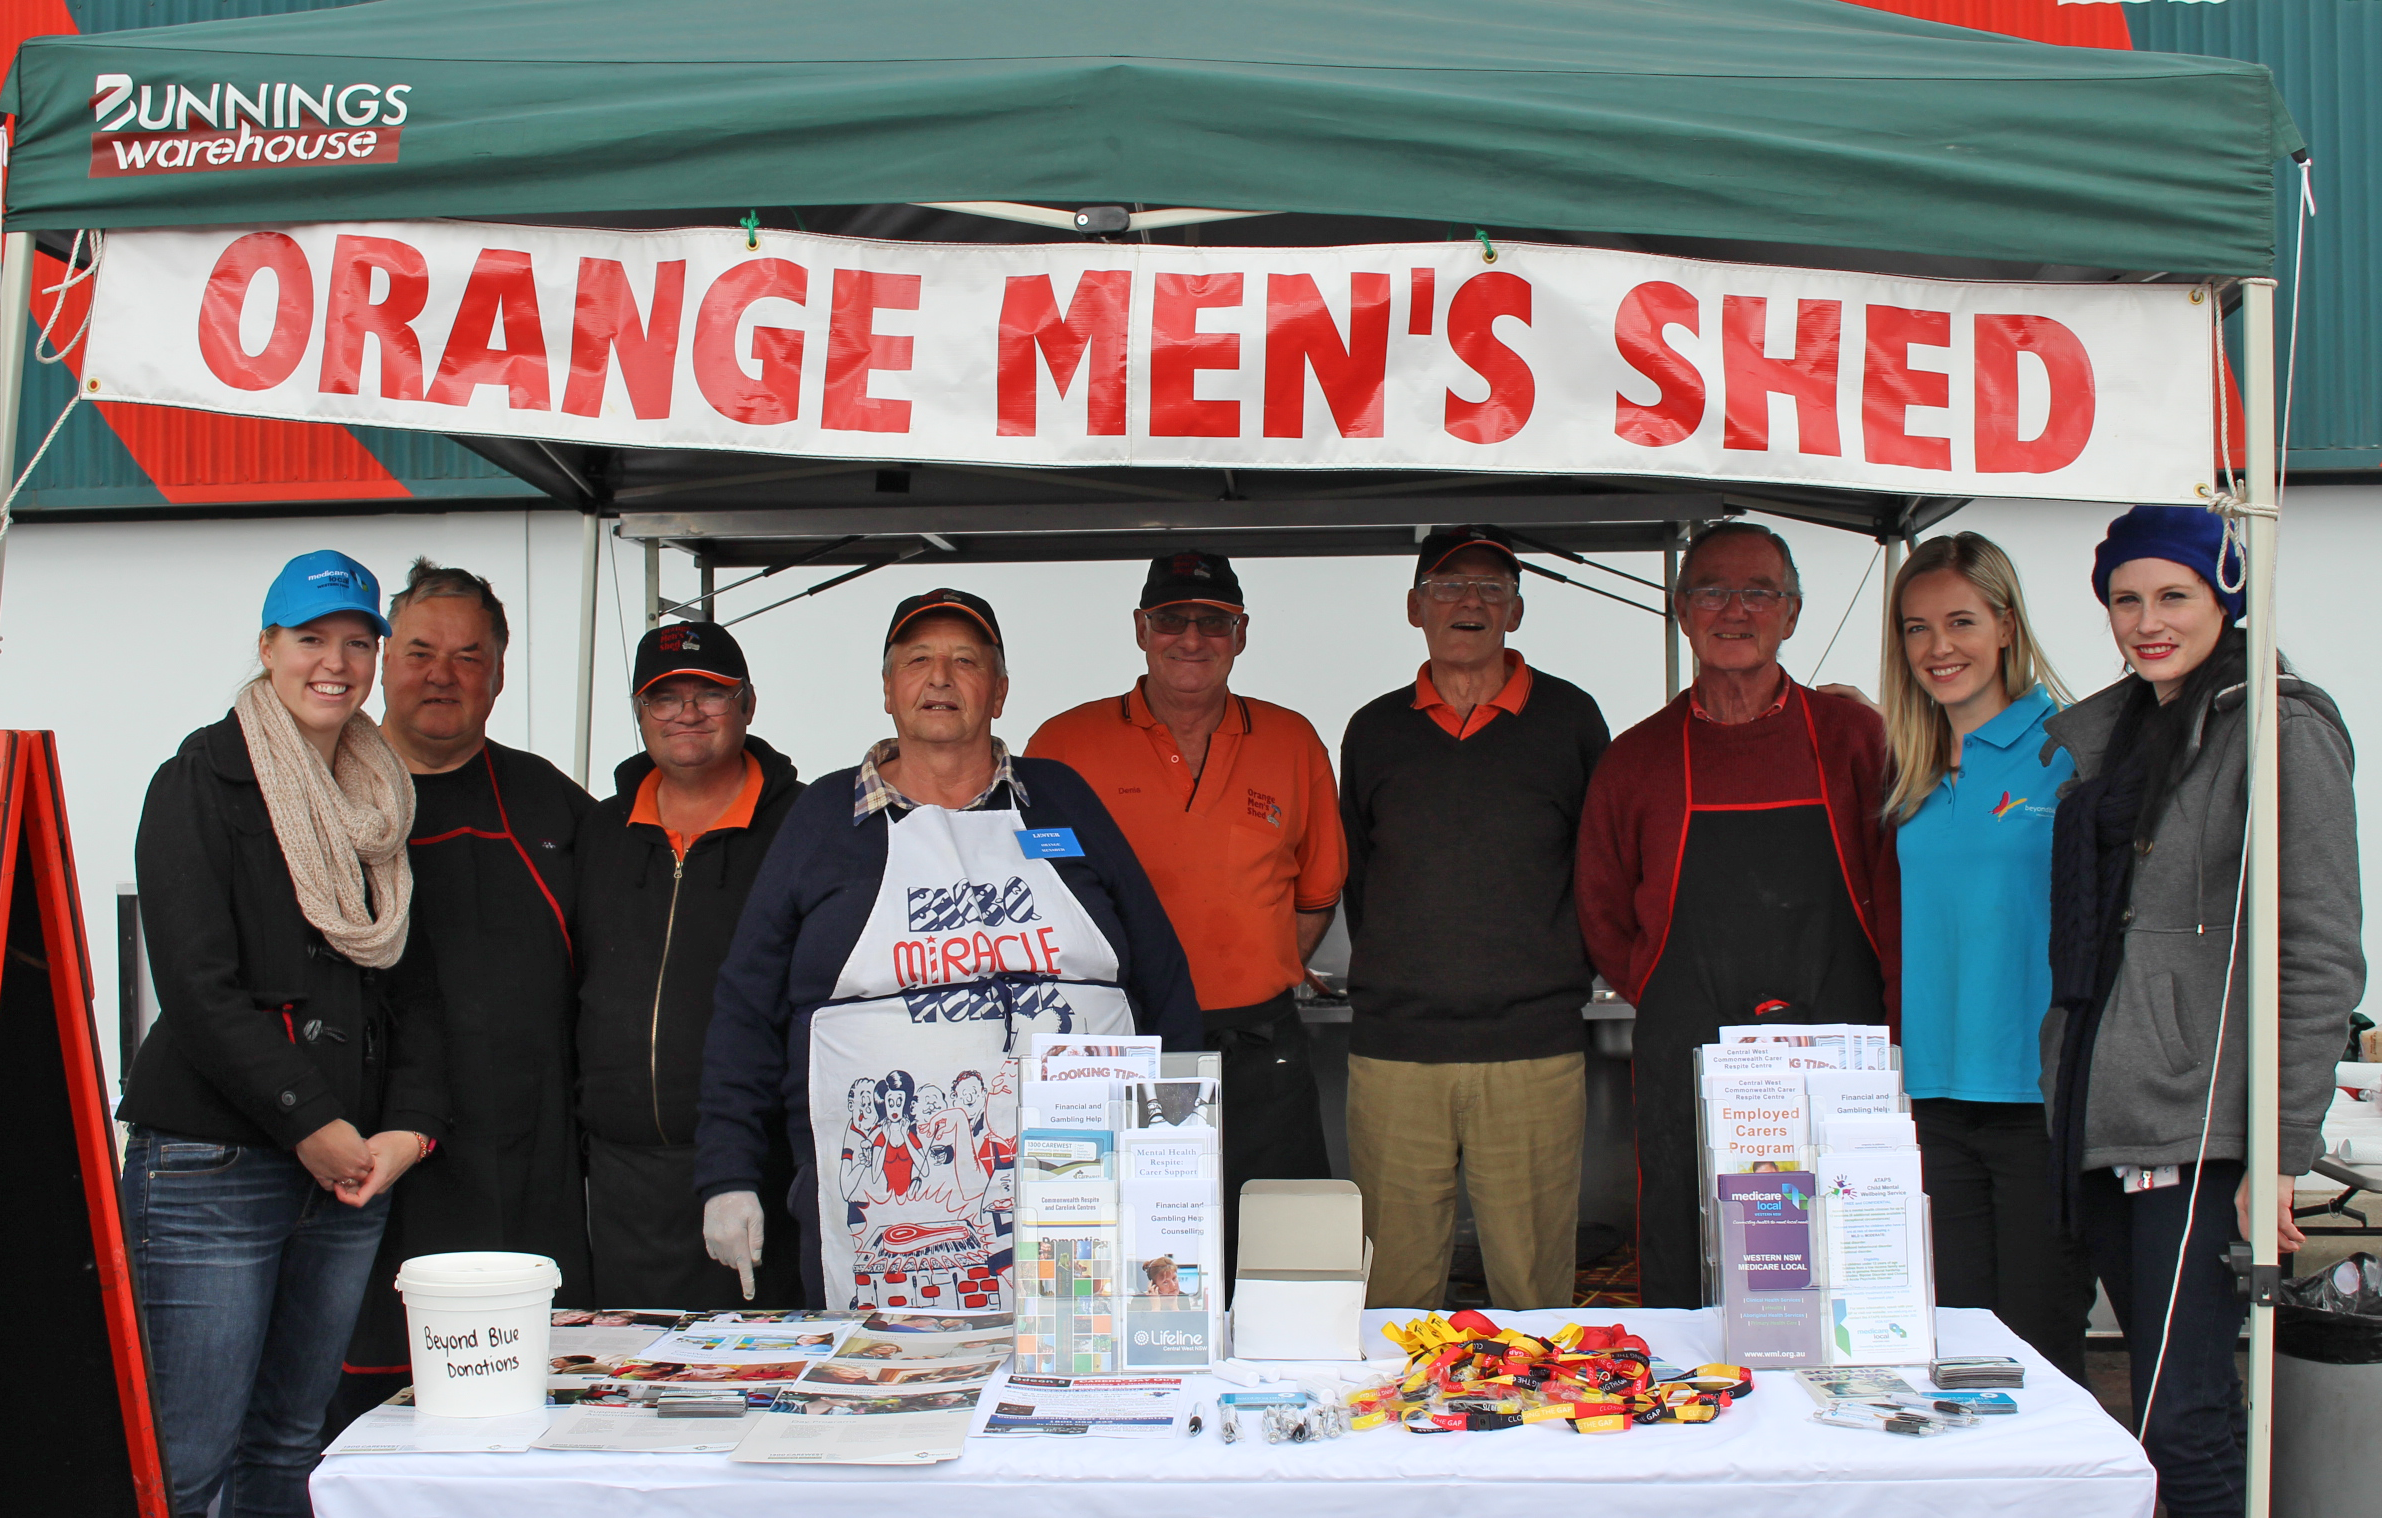 The Orange Men's Shed cooked up a community barbecue for Beyond Blue during its visit: NSW.